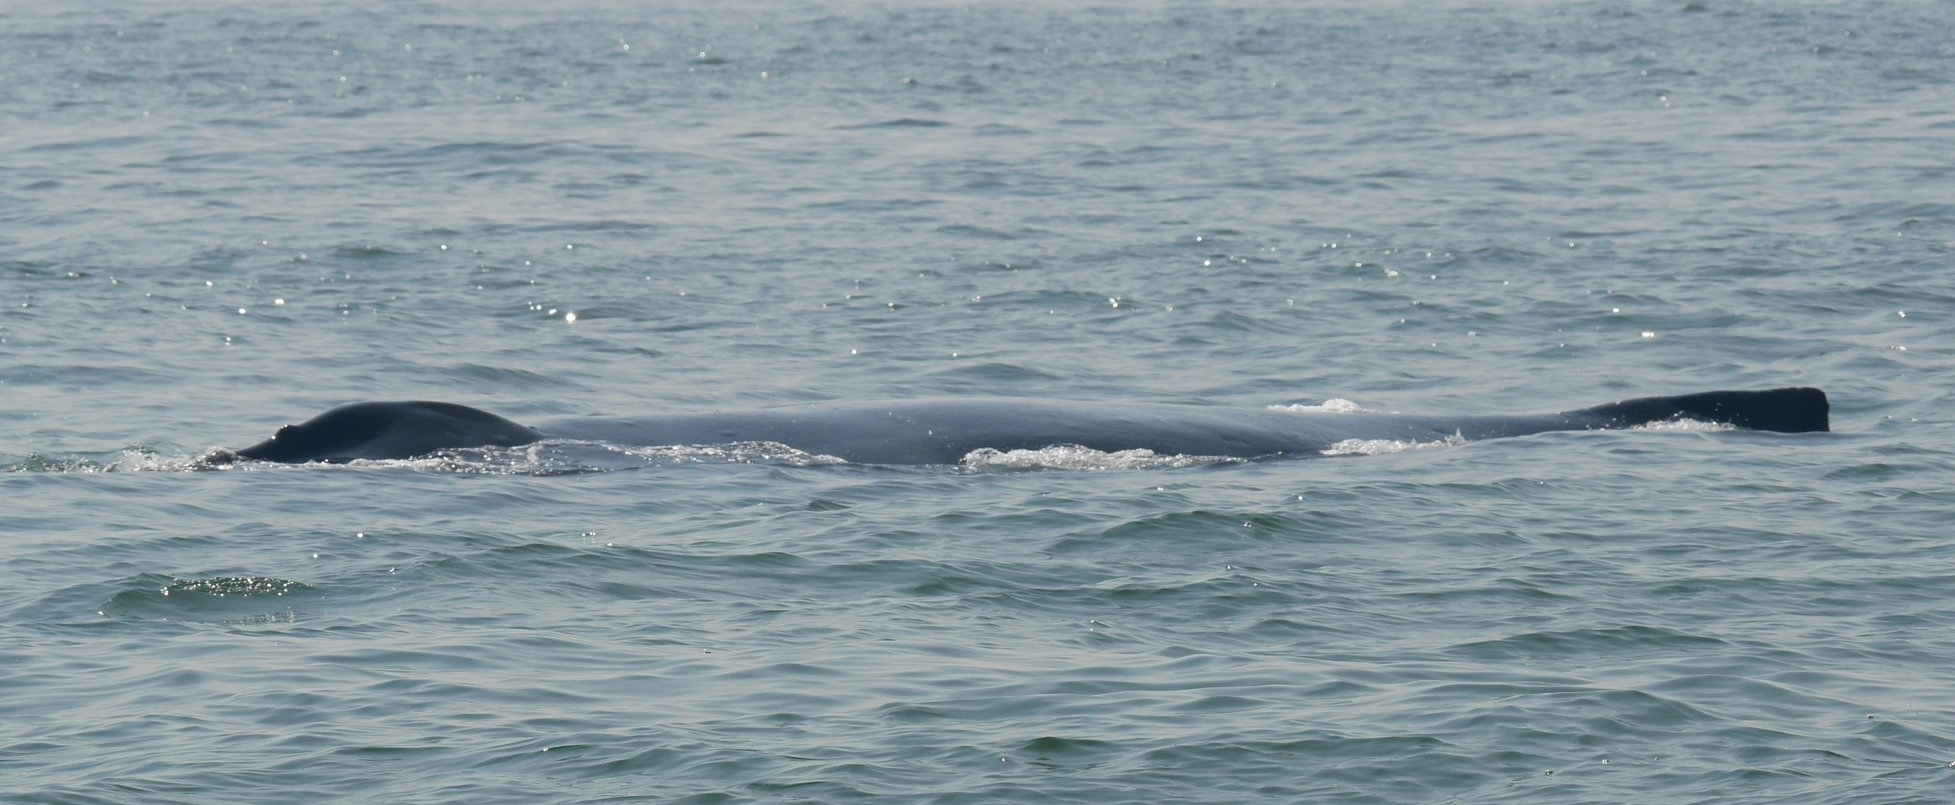 The blow-hole and dorsal fin of Zig-Zag the humpback as she surfaced for air. Photo by Jenna Keen.